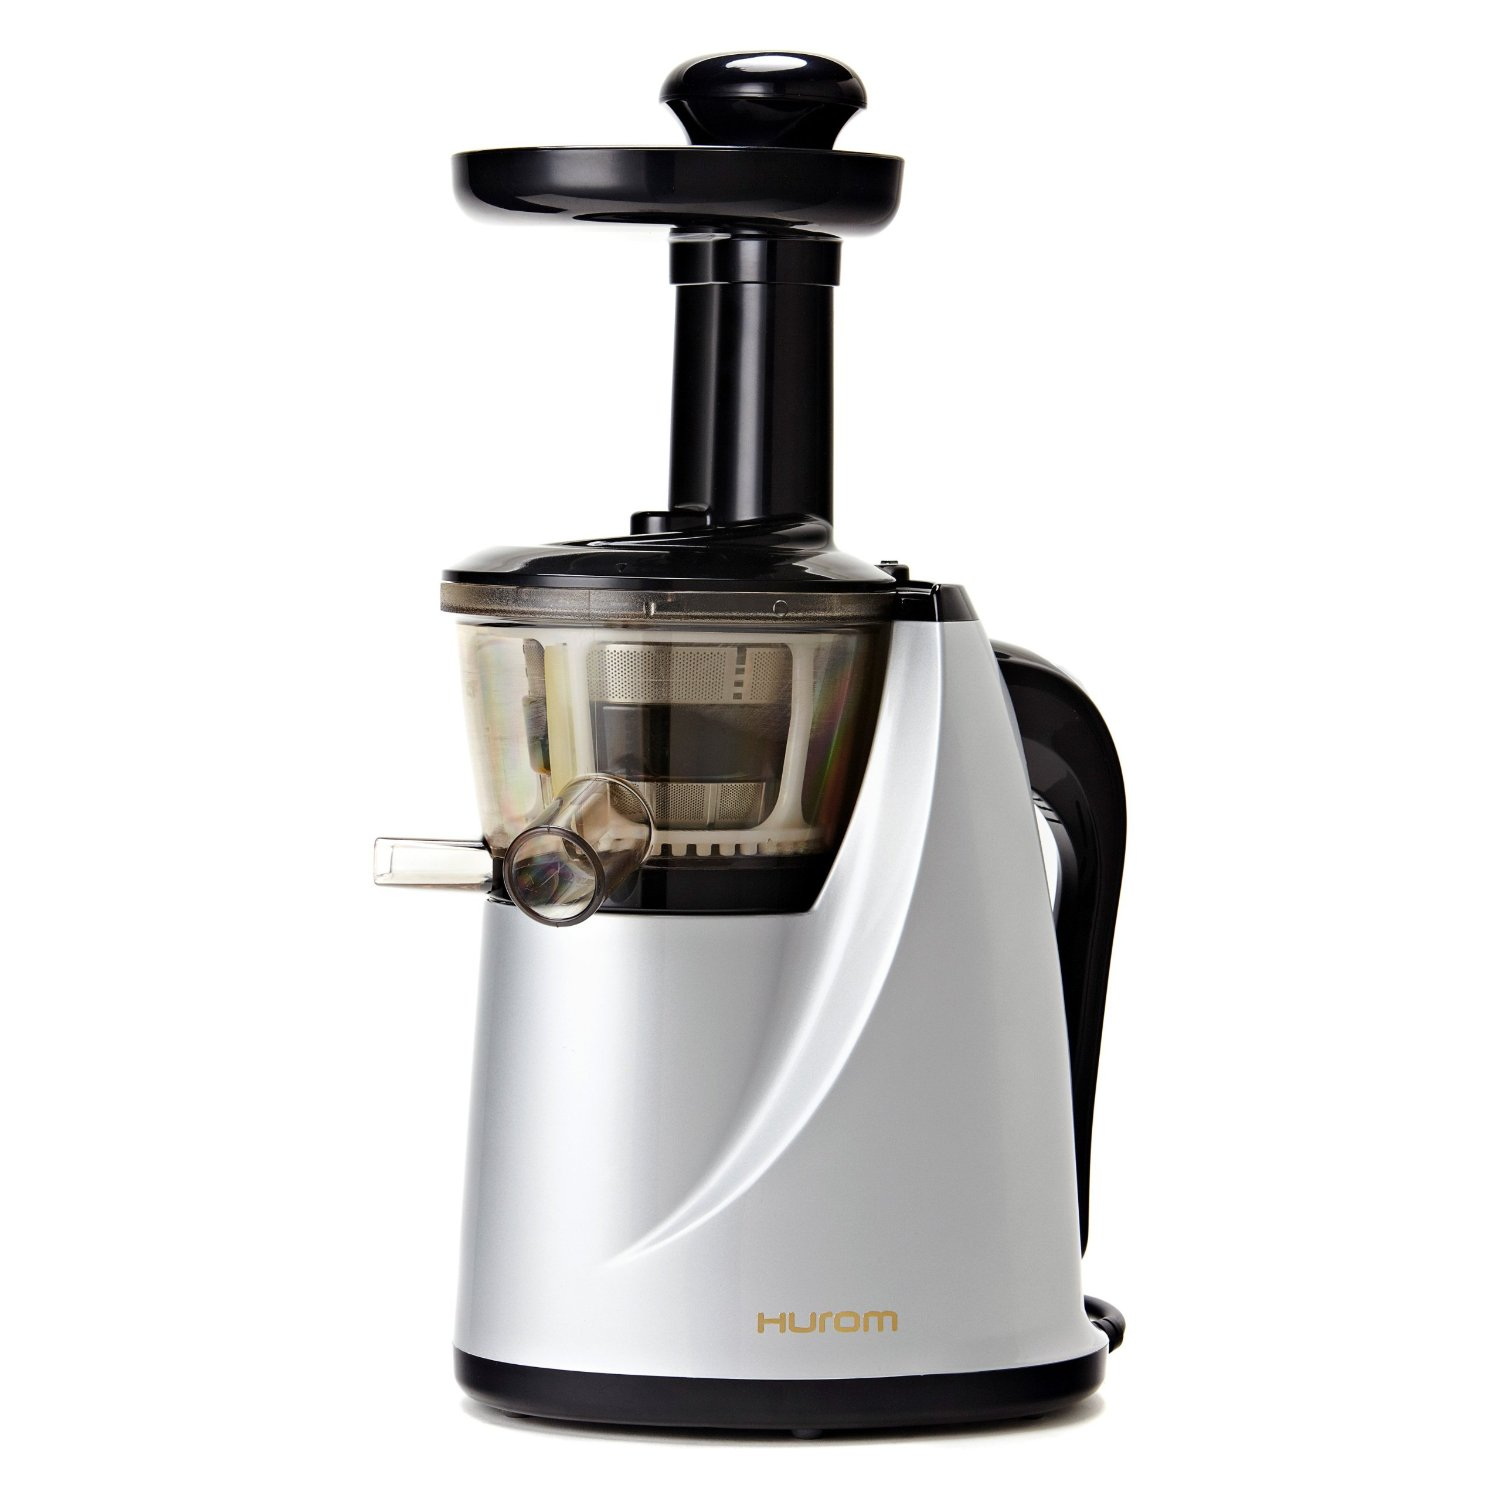 Slow Juicer Tokopedia : Hurom HU-100 Masticating Slow Juicer Review - Best Cold Press Juicers